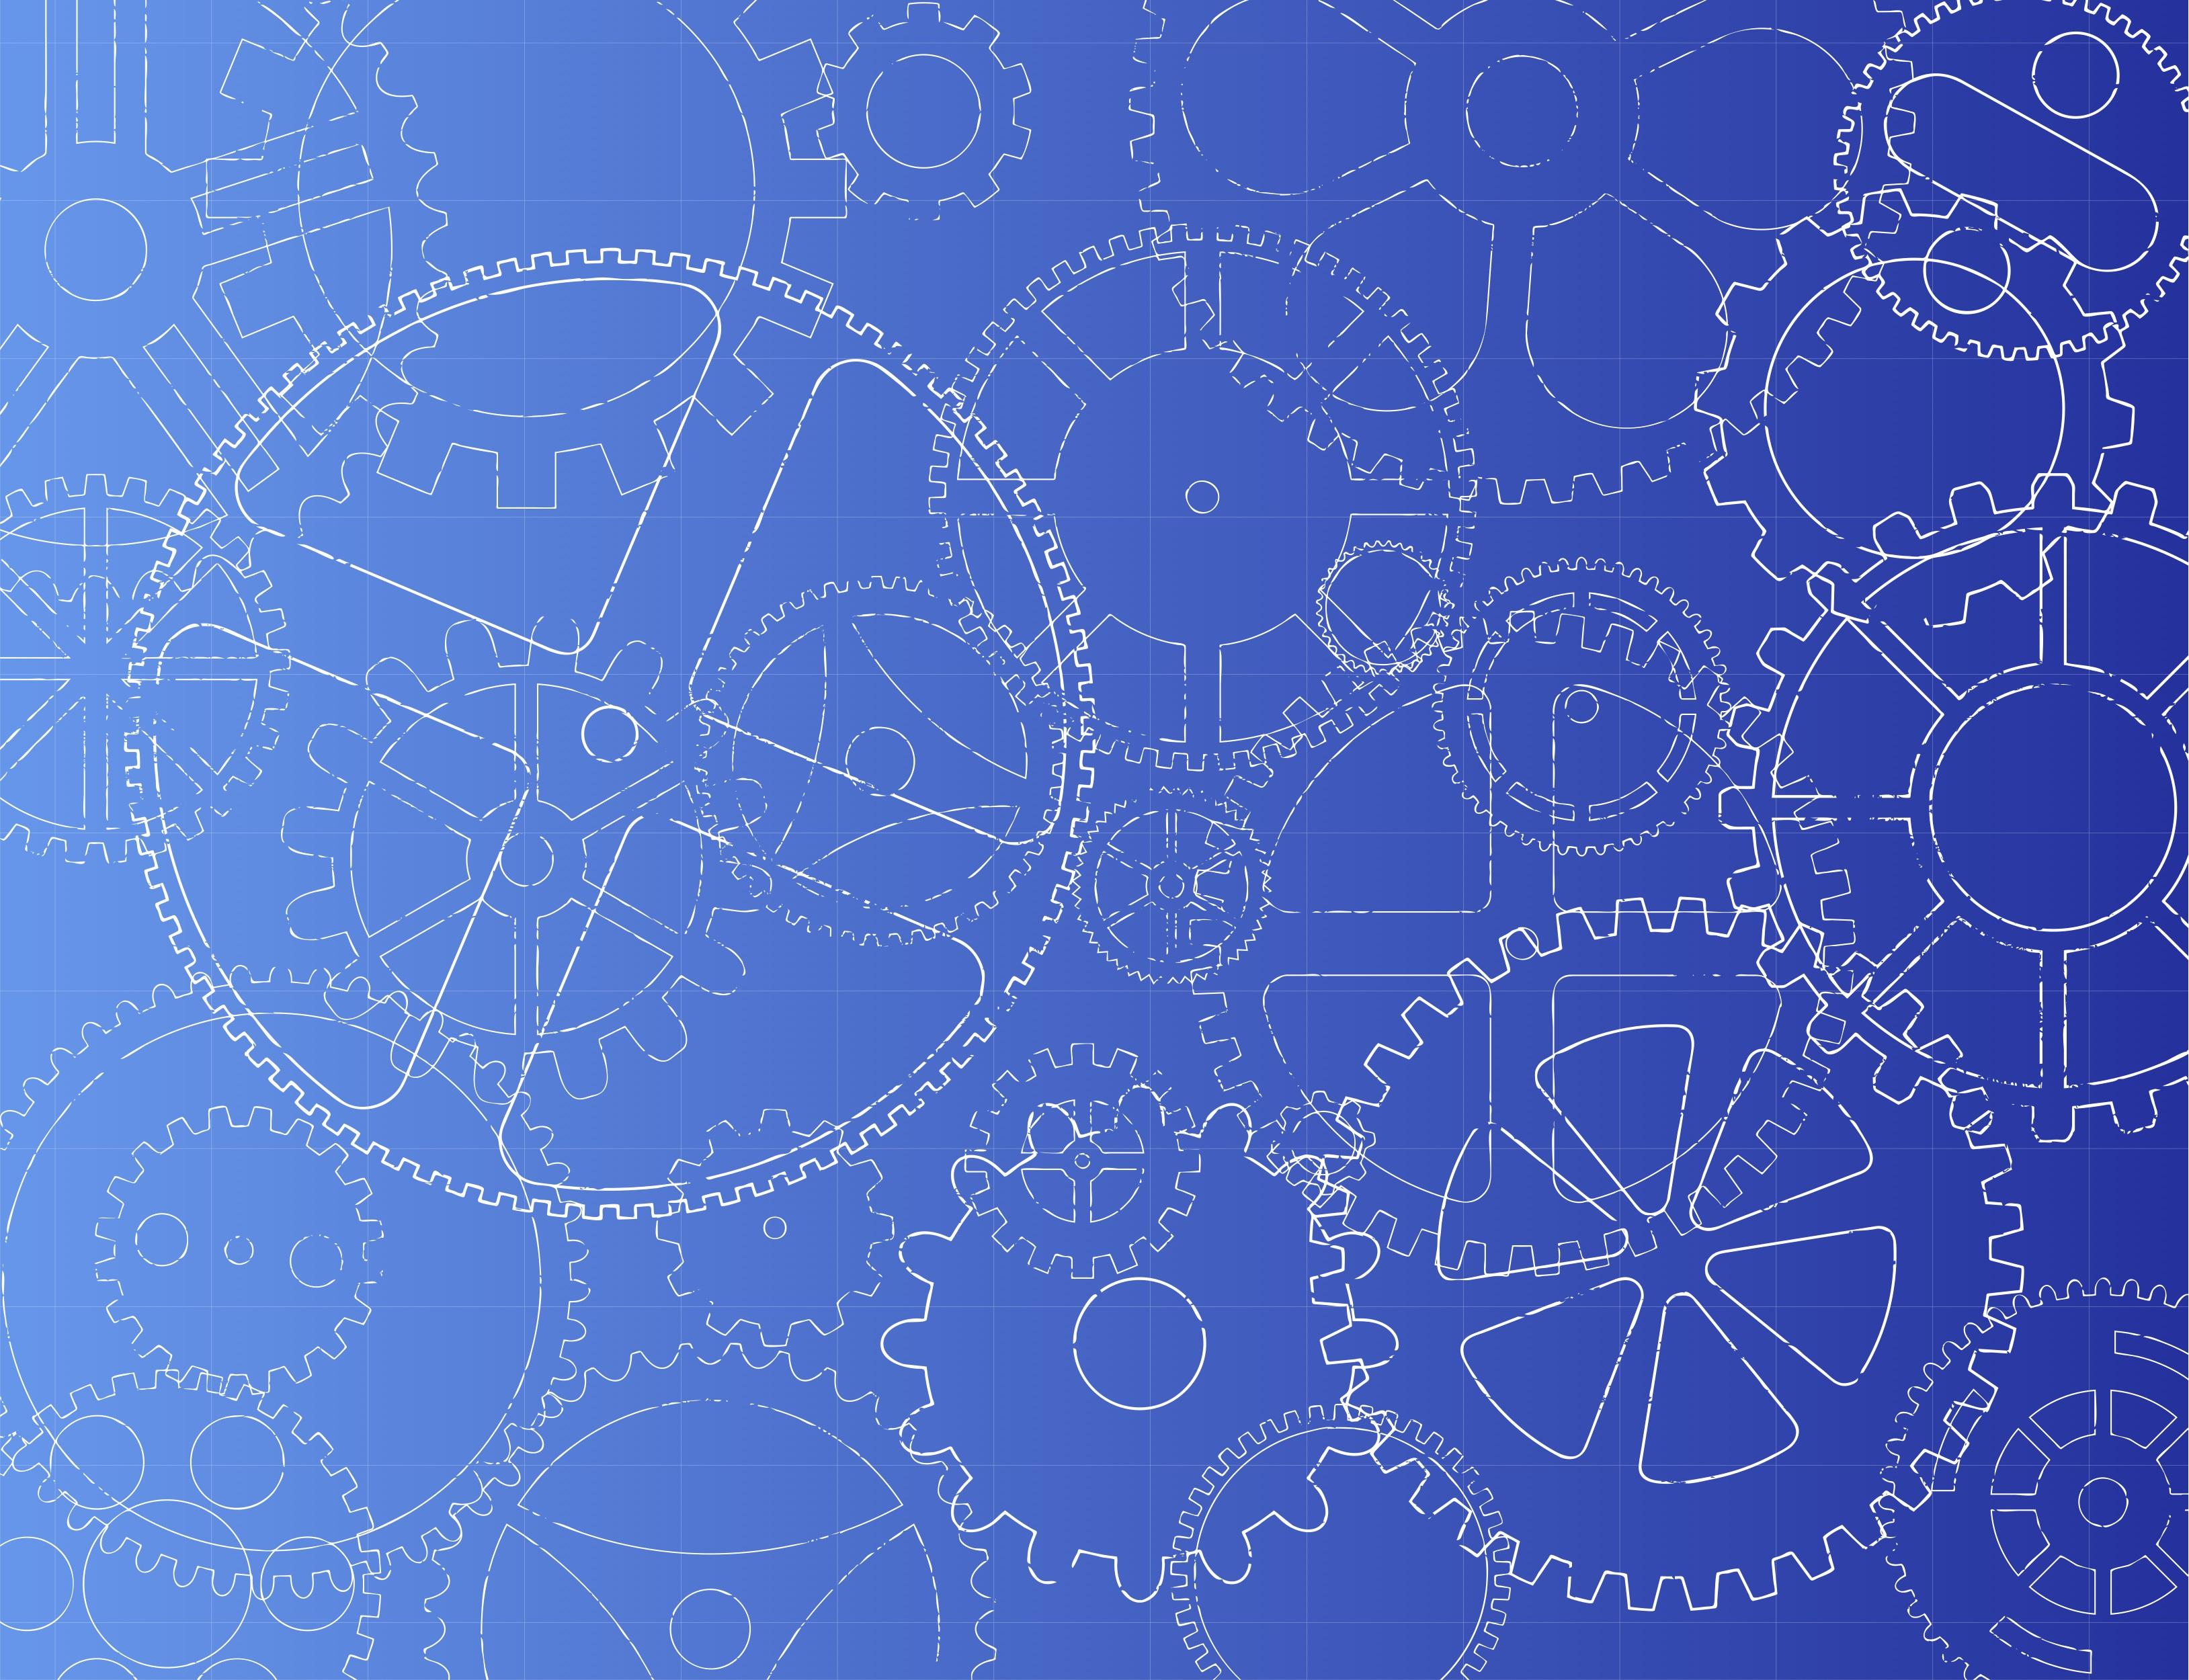 The blueprint: hierarchy and reporting structures in risk management software